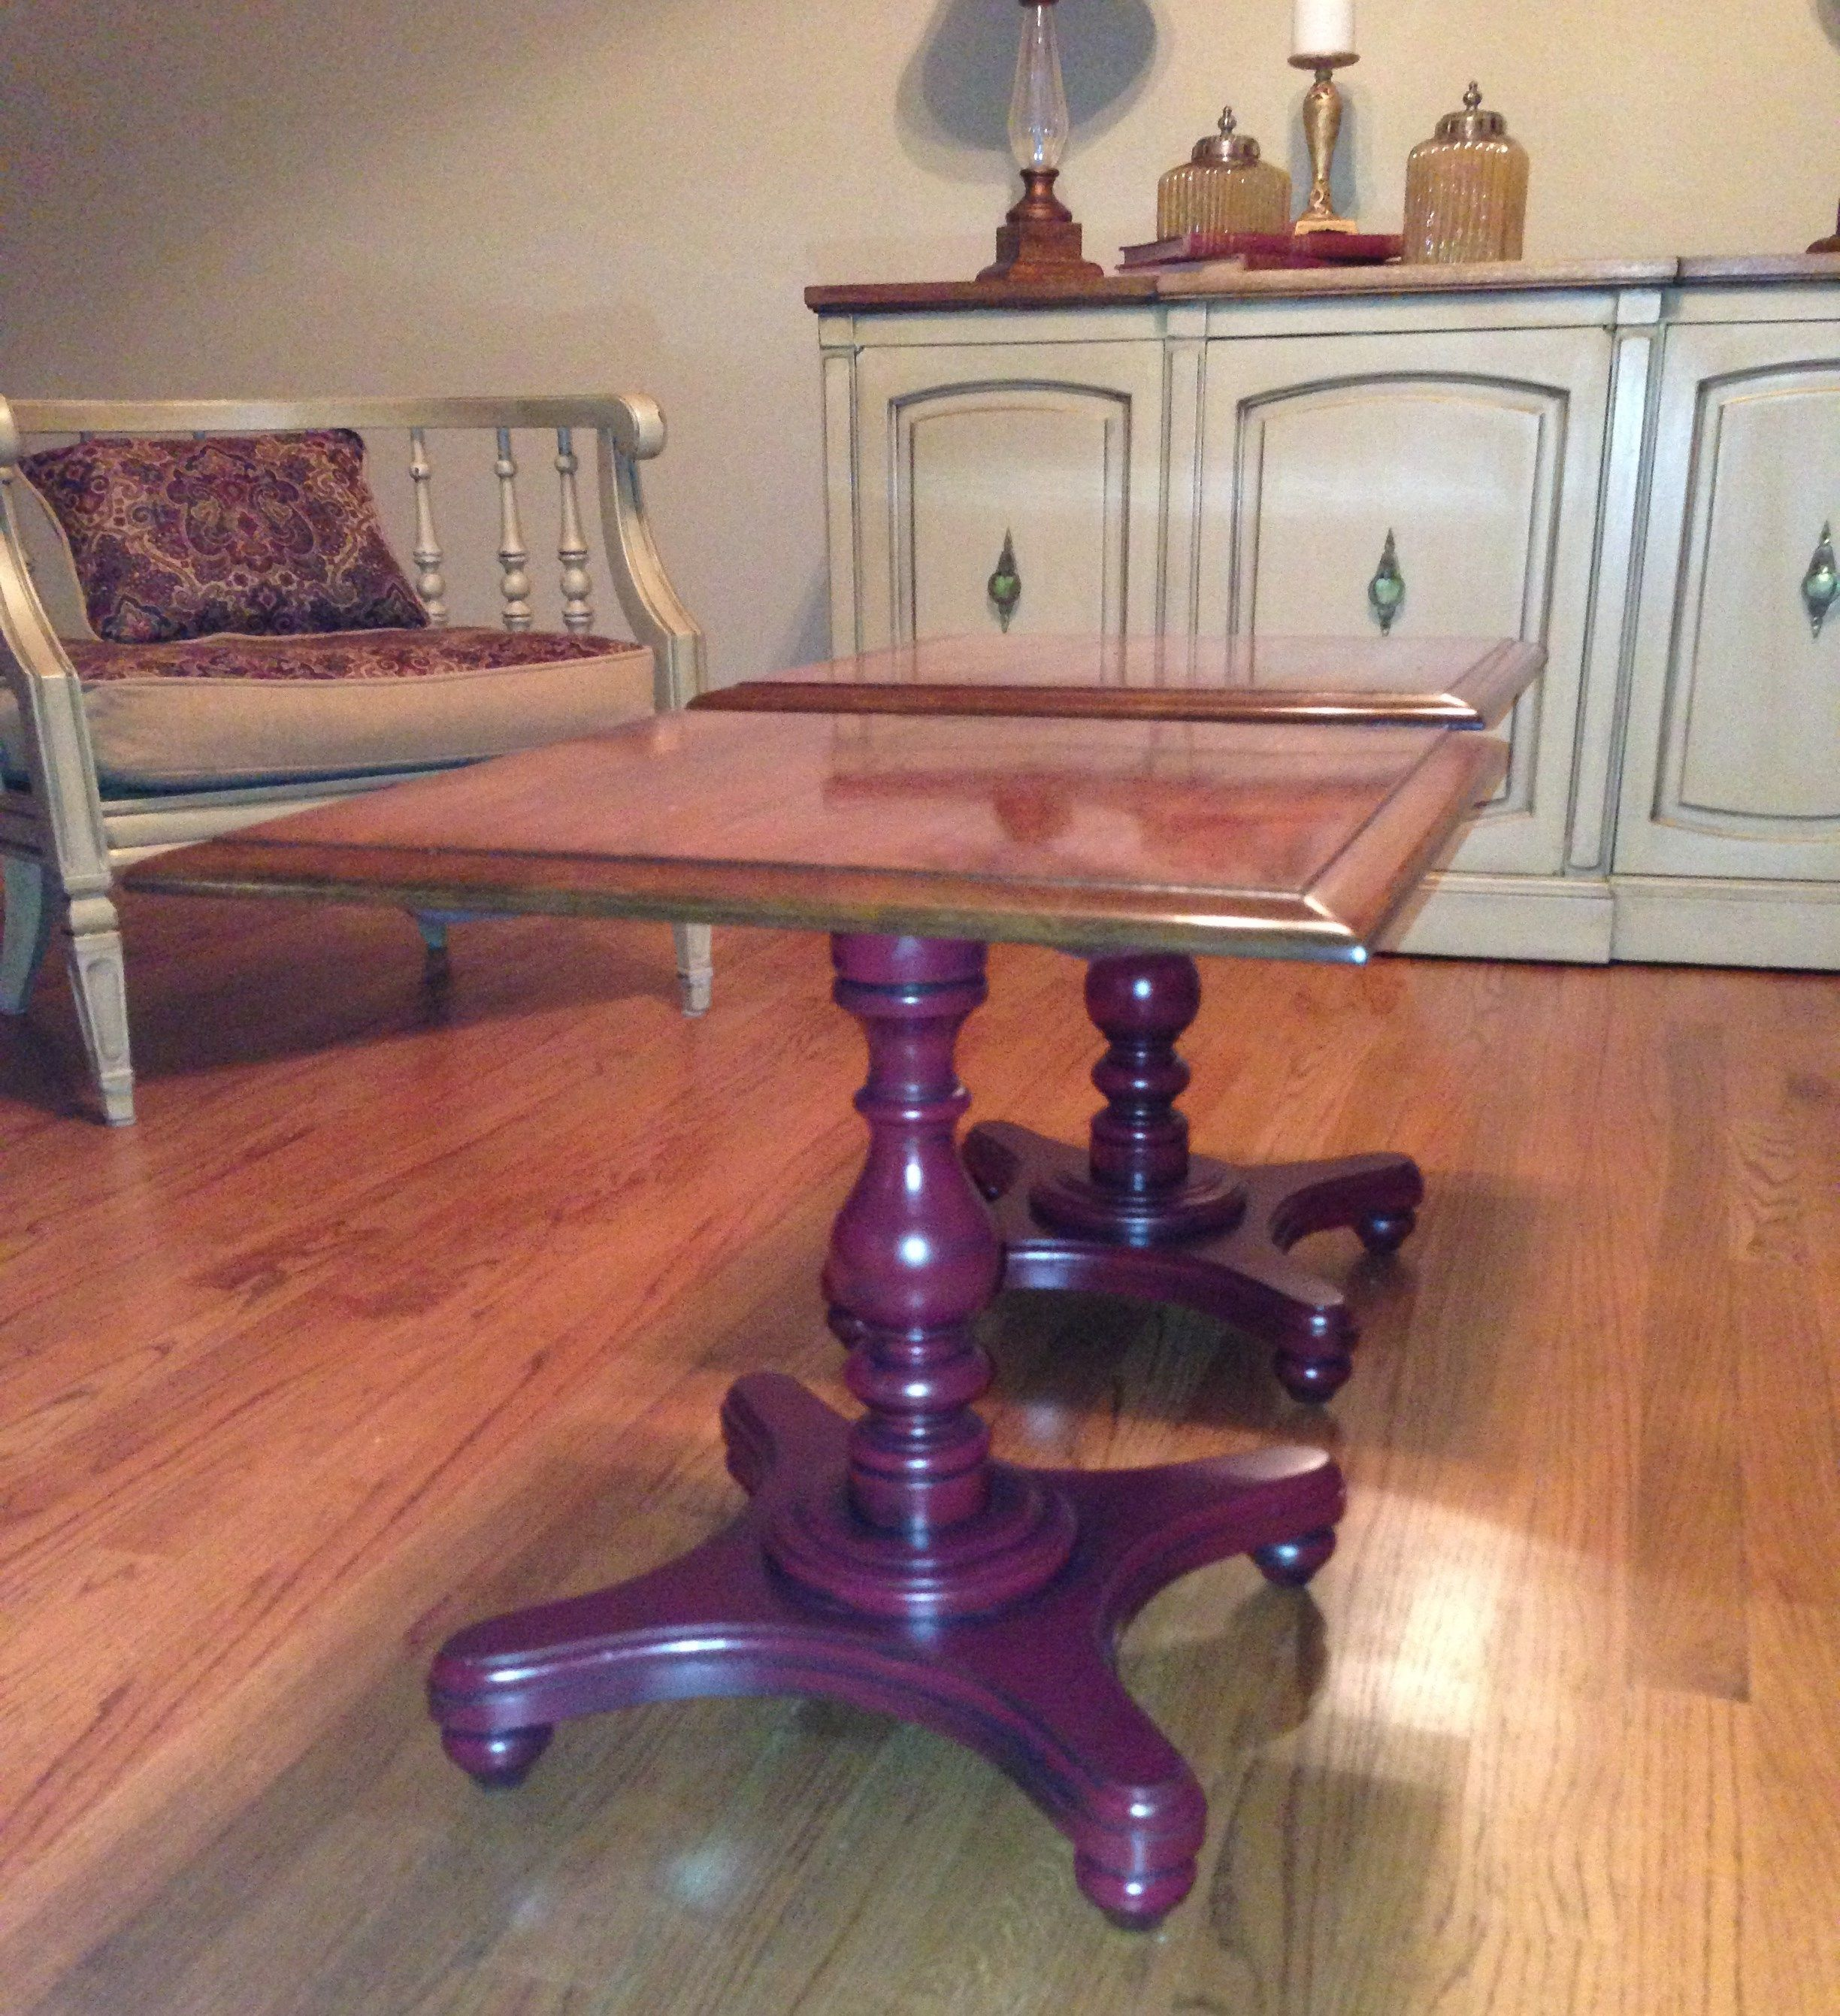 Etonnant Refinished End Tables. Finished In A Garnet Paint With Mocha Glaze. 2 End  Tables